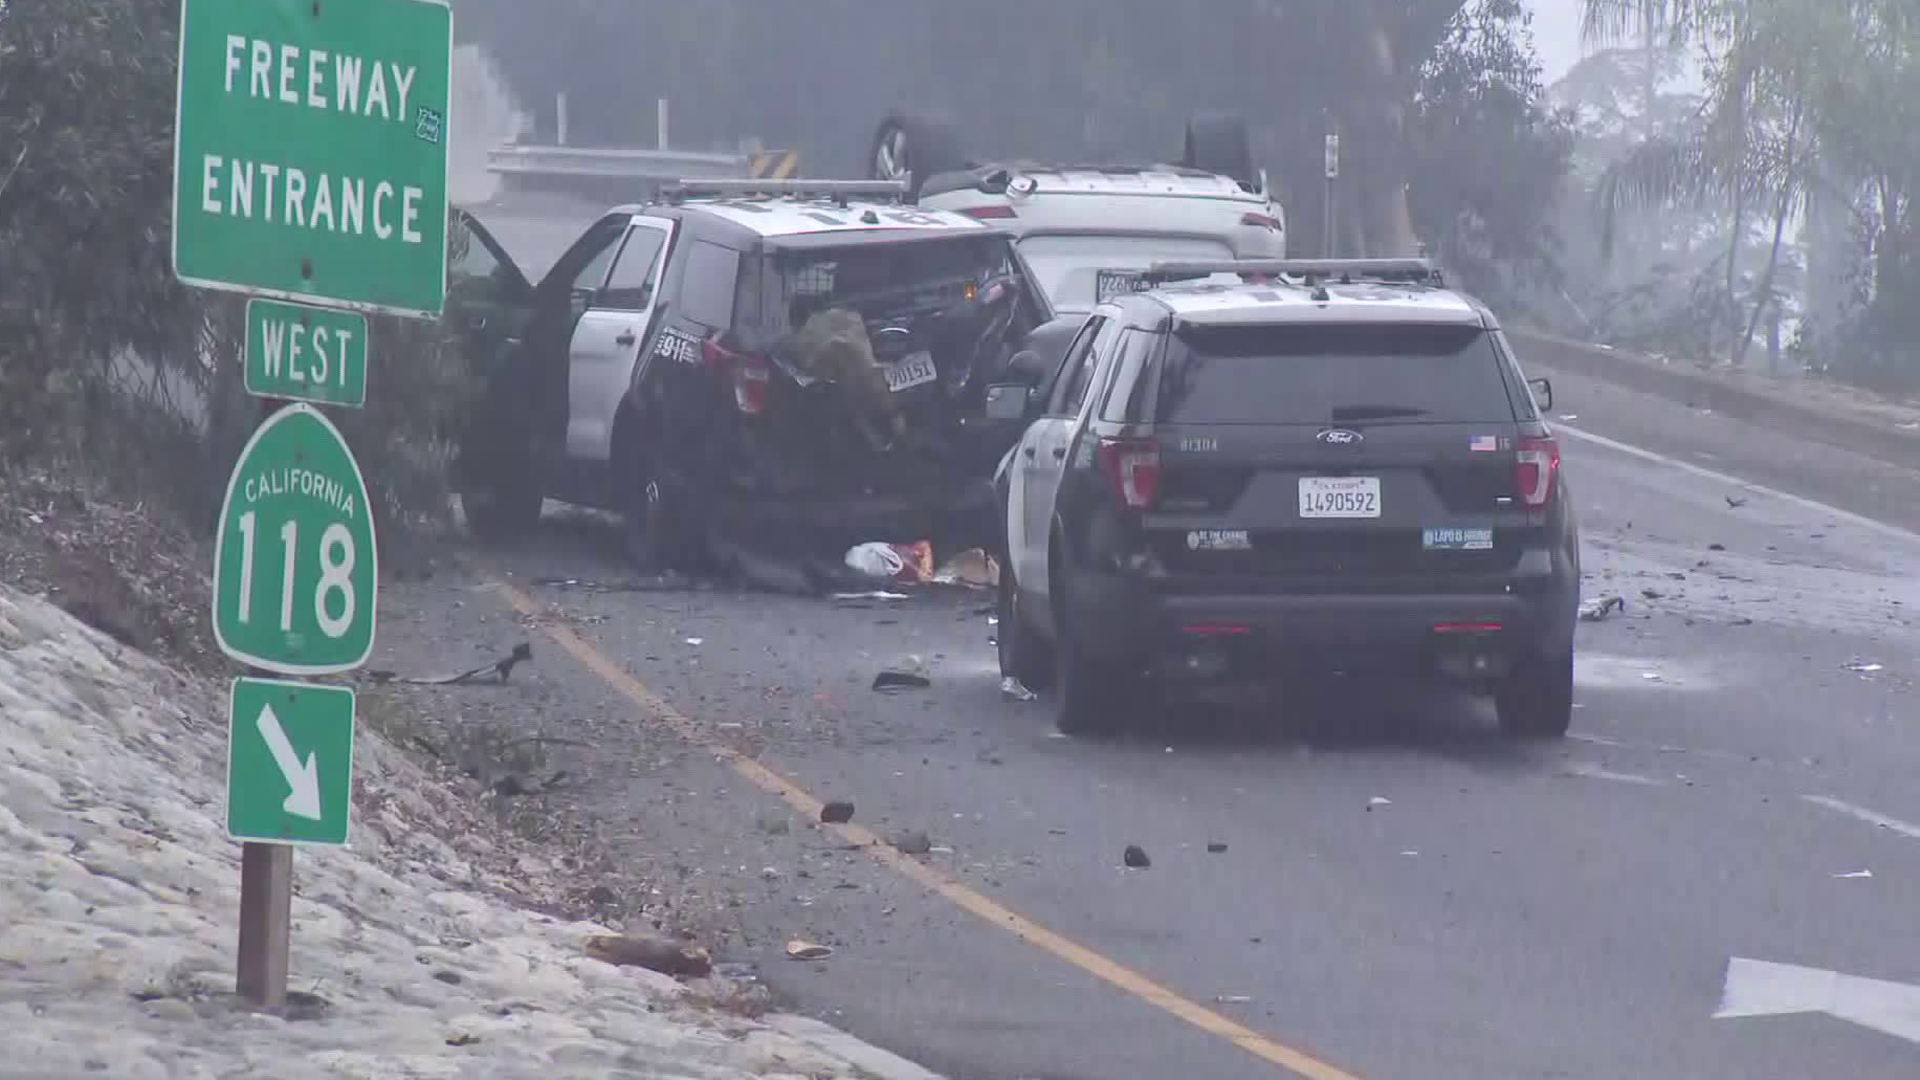 A heavily damaged Los Angeles police vehicle is seen behind a white Mercedes SUV that came to rest upside-down after crashing in Pacoima on Nov. 11, 2019. (Credit: KTLA)